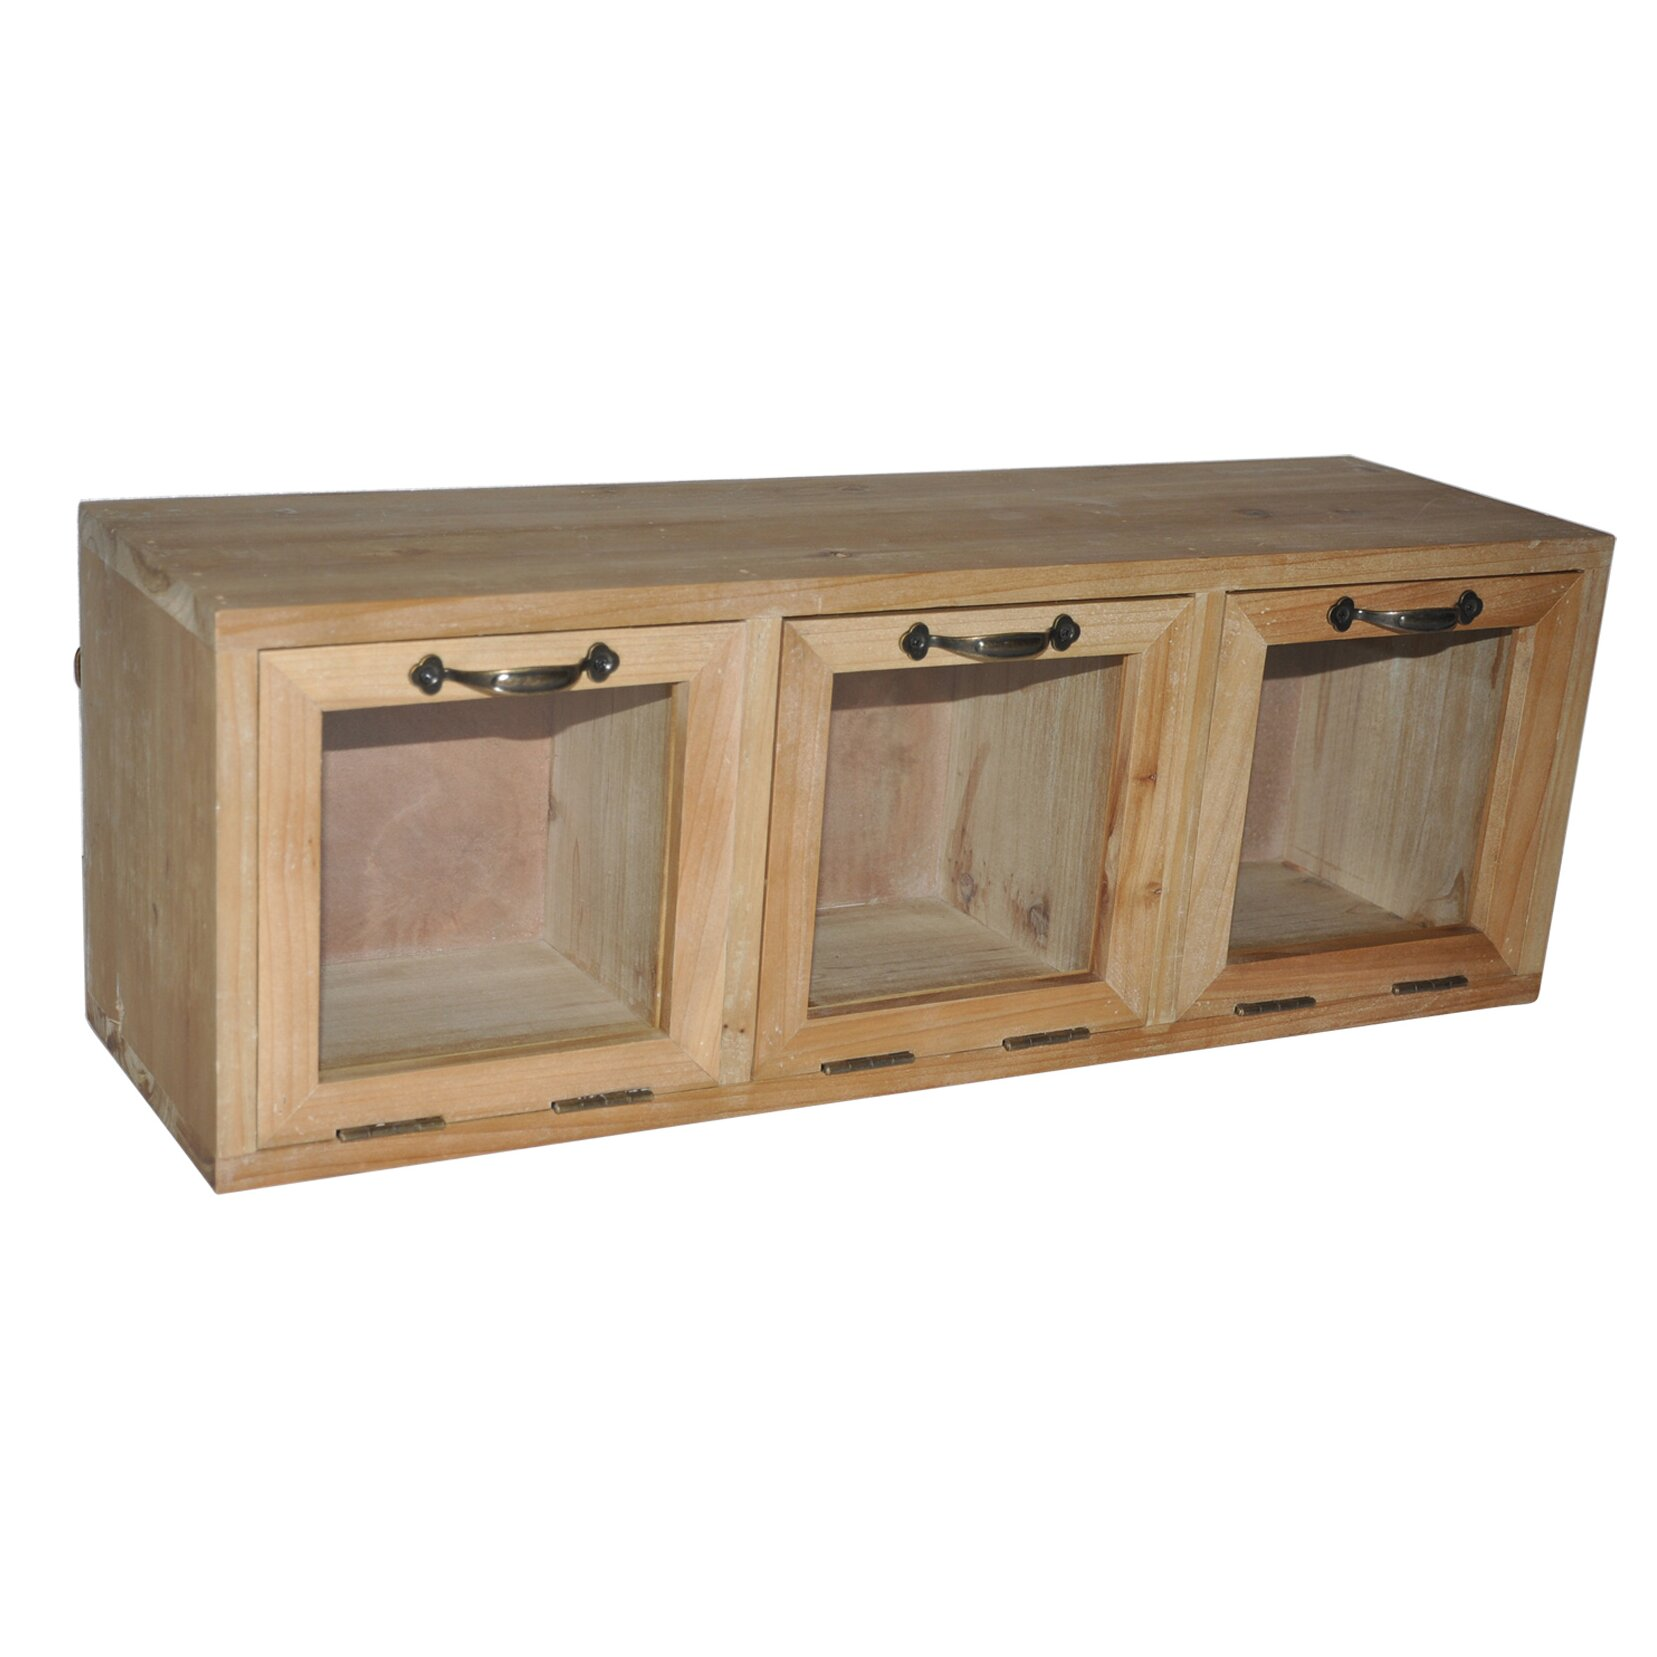 Wooden Storage Cabinets With Doors Cheungs Wood Hanging Storage Cabinet With Glass Doors Reviews